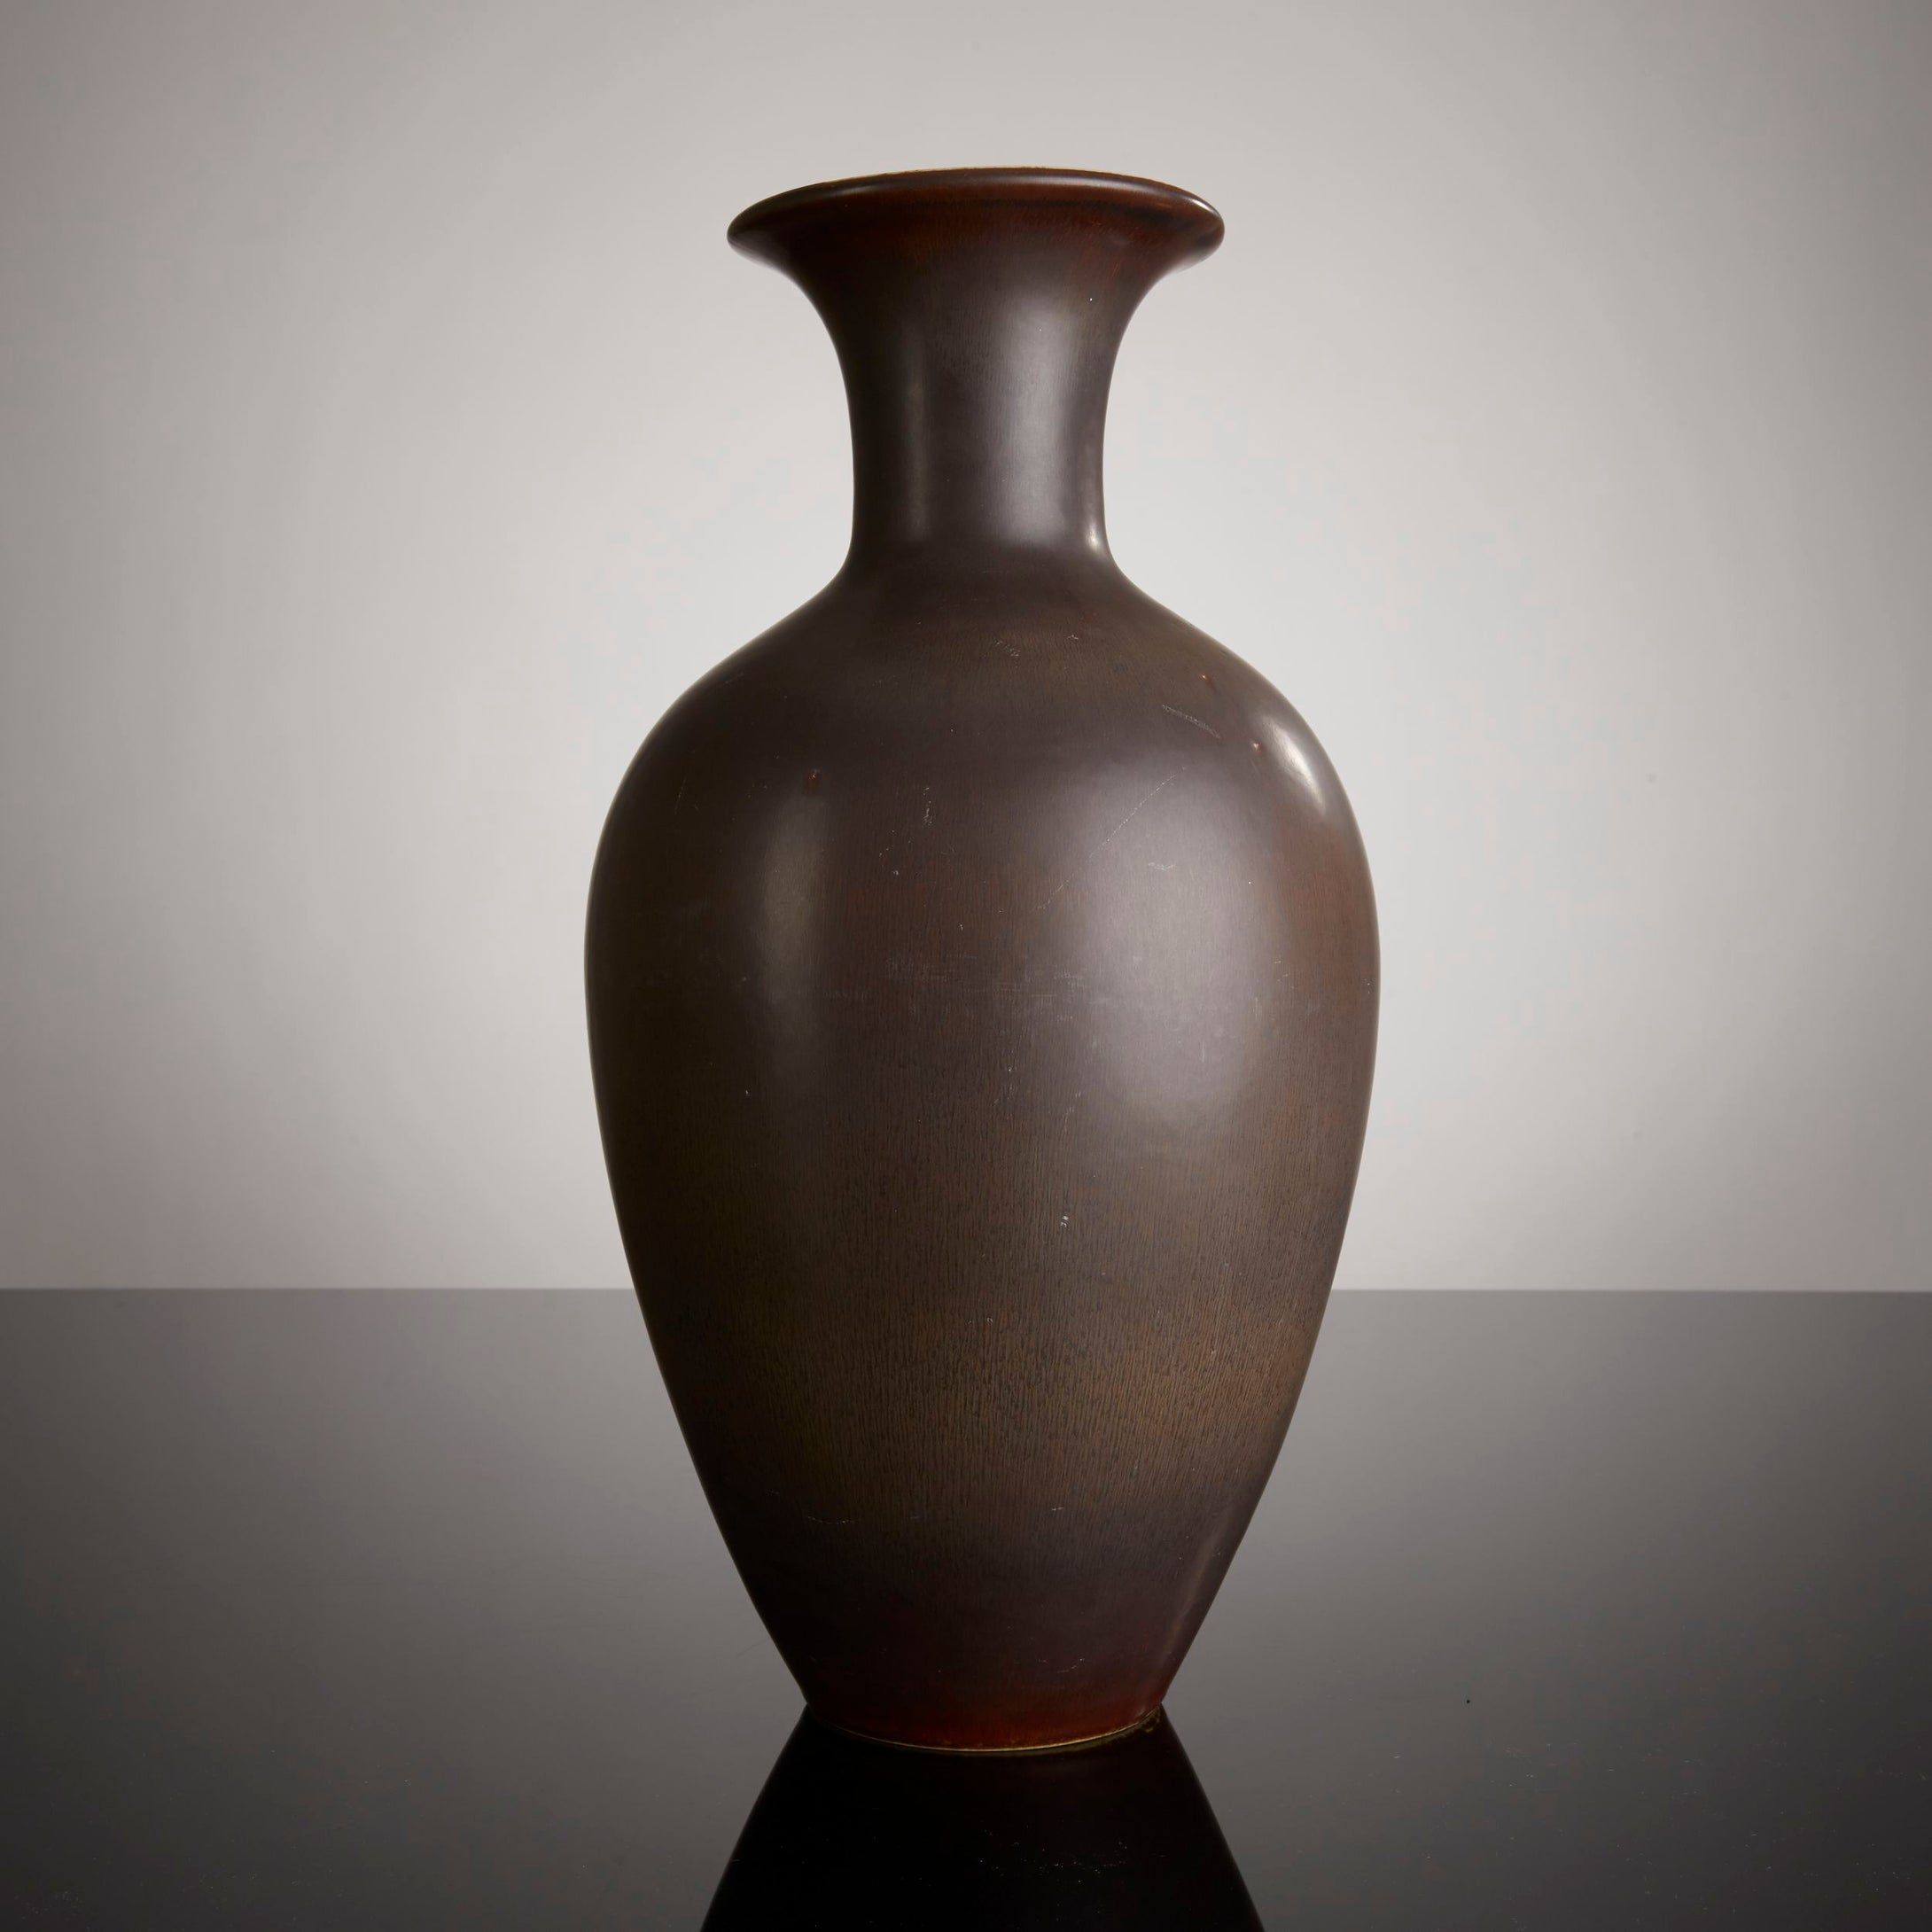 Golvvas i stengods, av Gunnar Nylund för Rörstrand, 1950-tal. Signerad R GN SWEDEN AKT. 44cm hög och diameter 23cm. Stoneware floor vase by Gunnar Nylund for Rörstrand, 1950's. Signed R GN SWEDEN AKT. H: 44cm/17.3″ and diam. 23cm/9,1